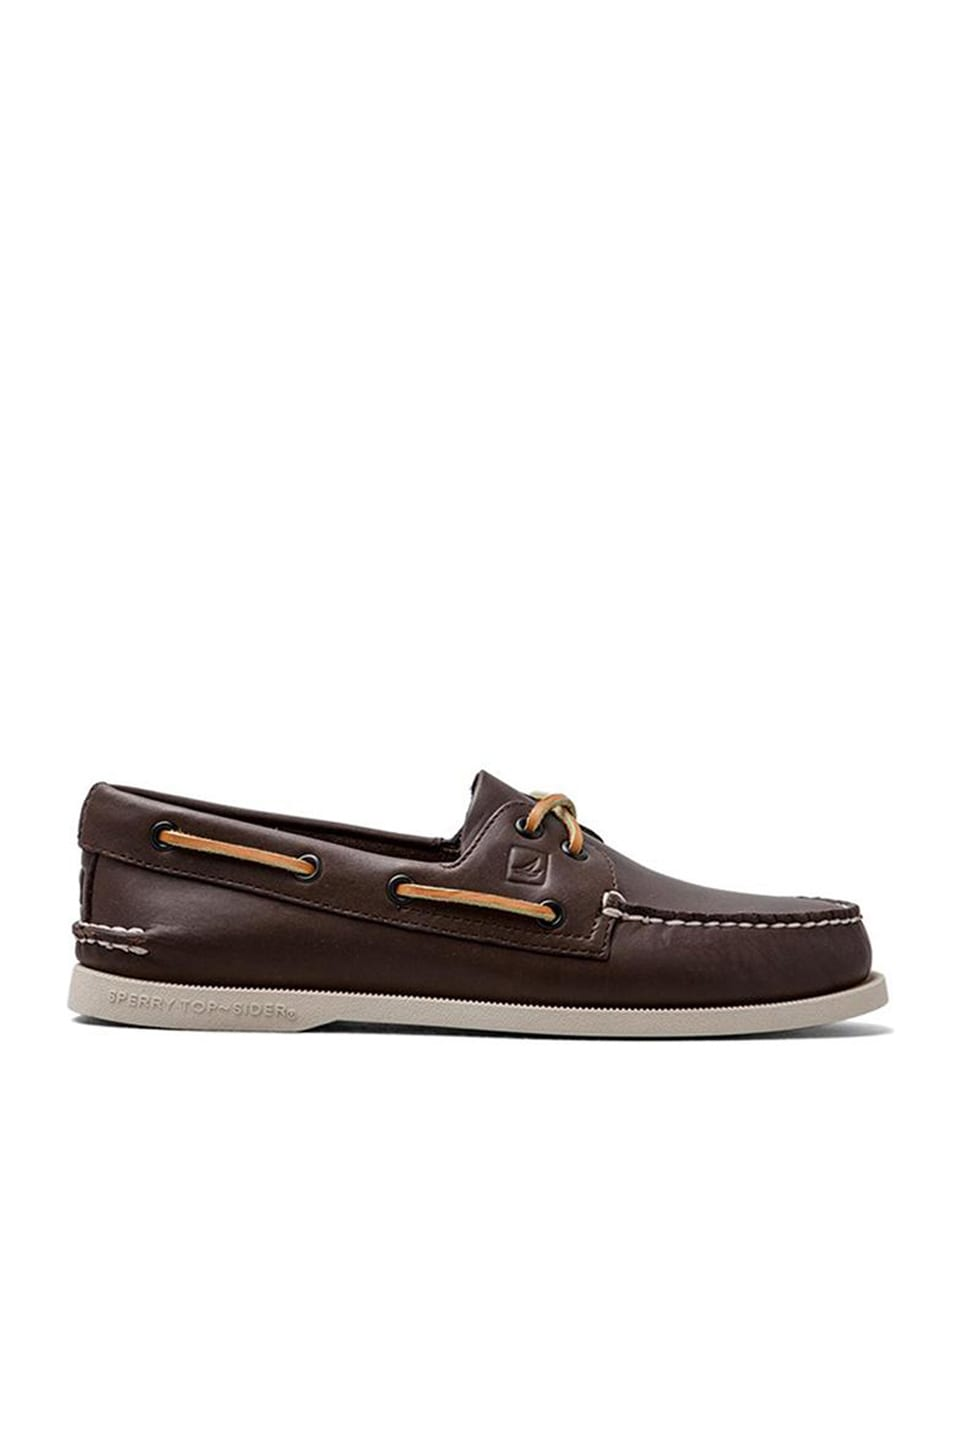 Sperry Top-Sider A/O in Classic Brown